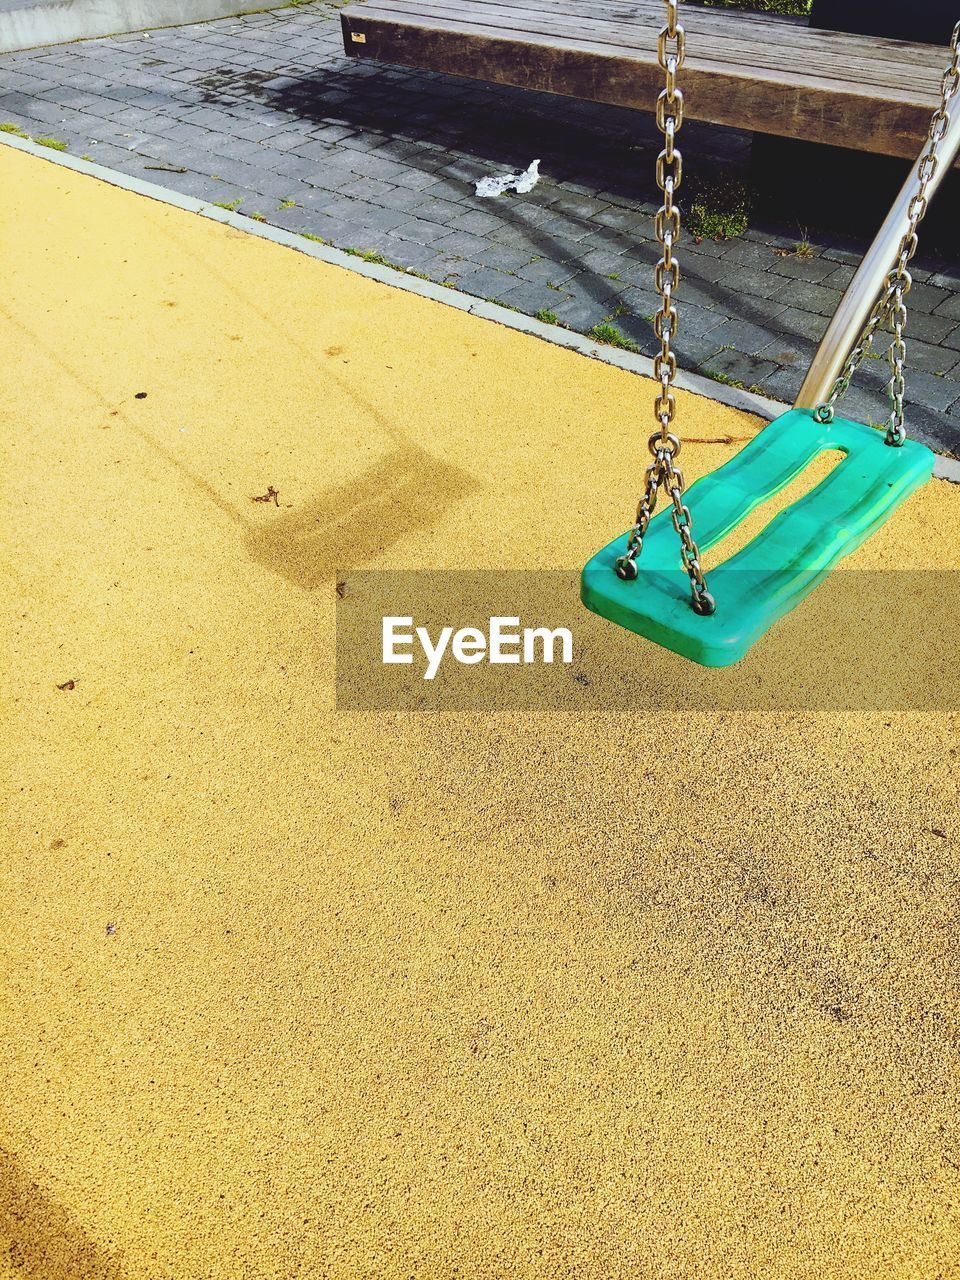 sand, no people, high angle view, day, outdoors, yellow, water, close-up